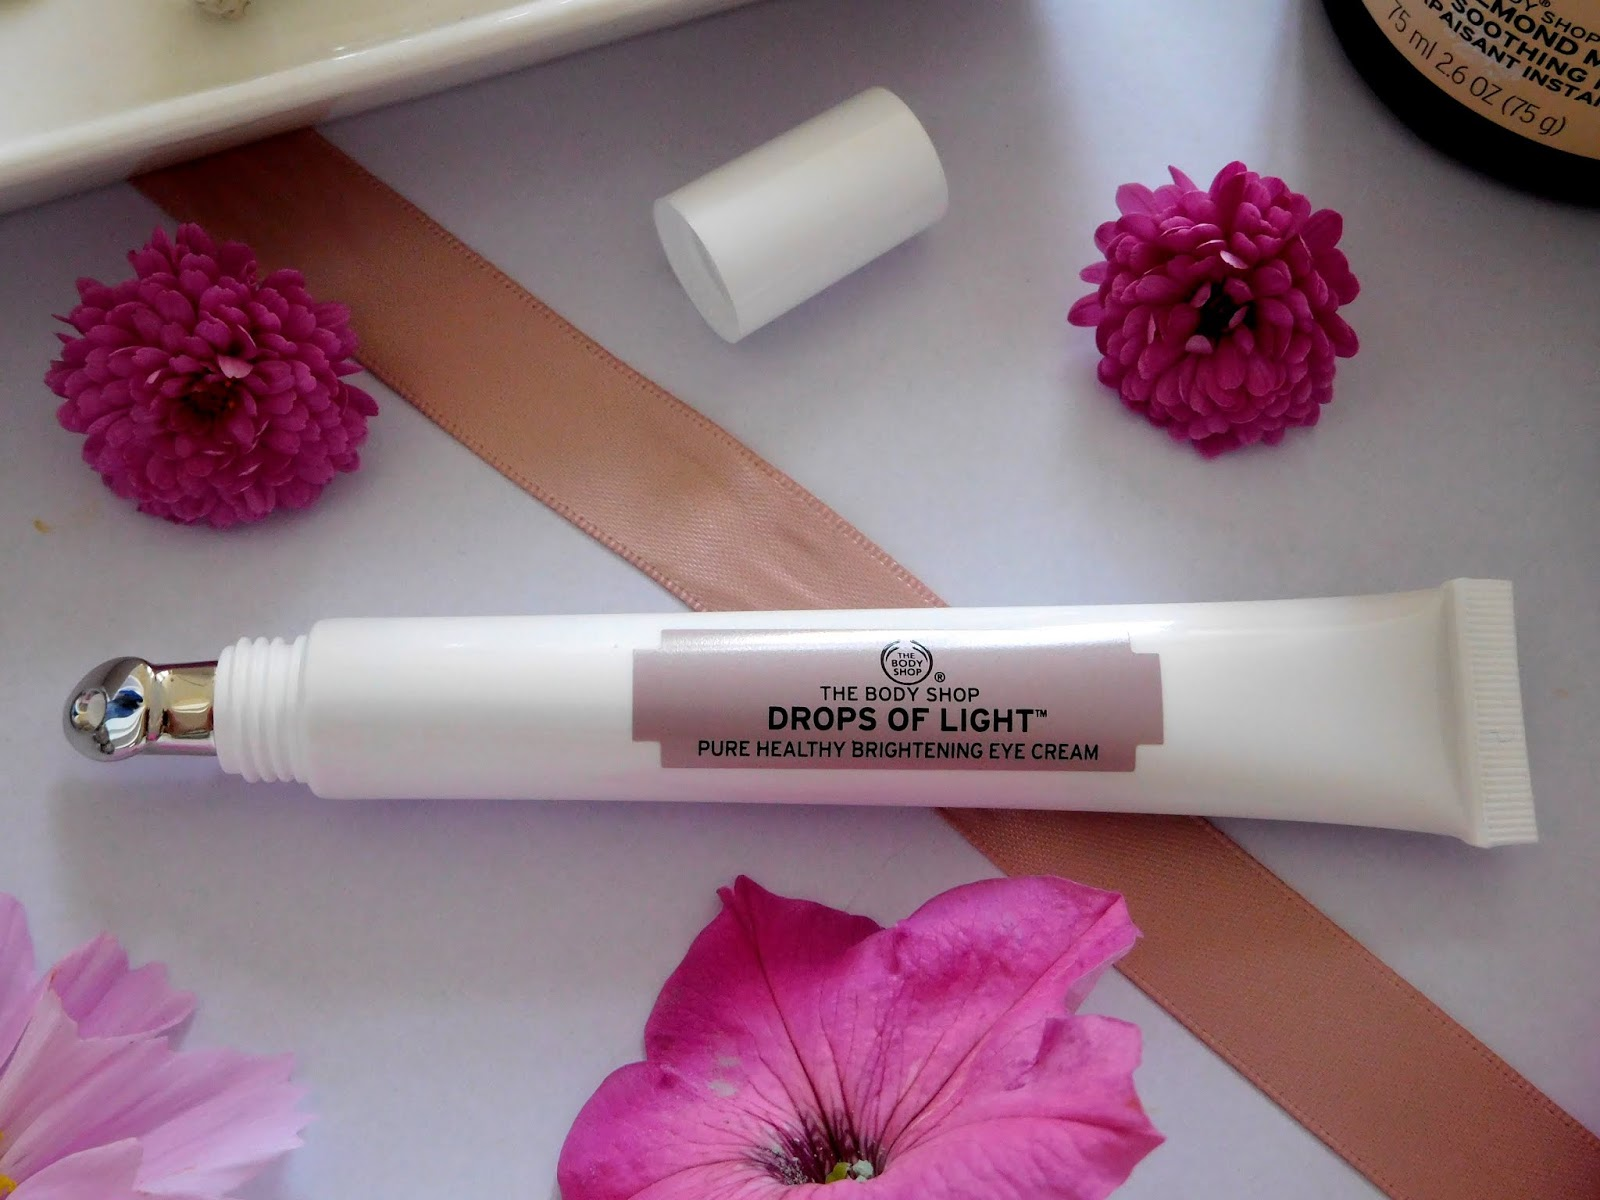 The Body Shop Drops Of Light Pure Healthy Brightening Eye Cream